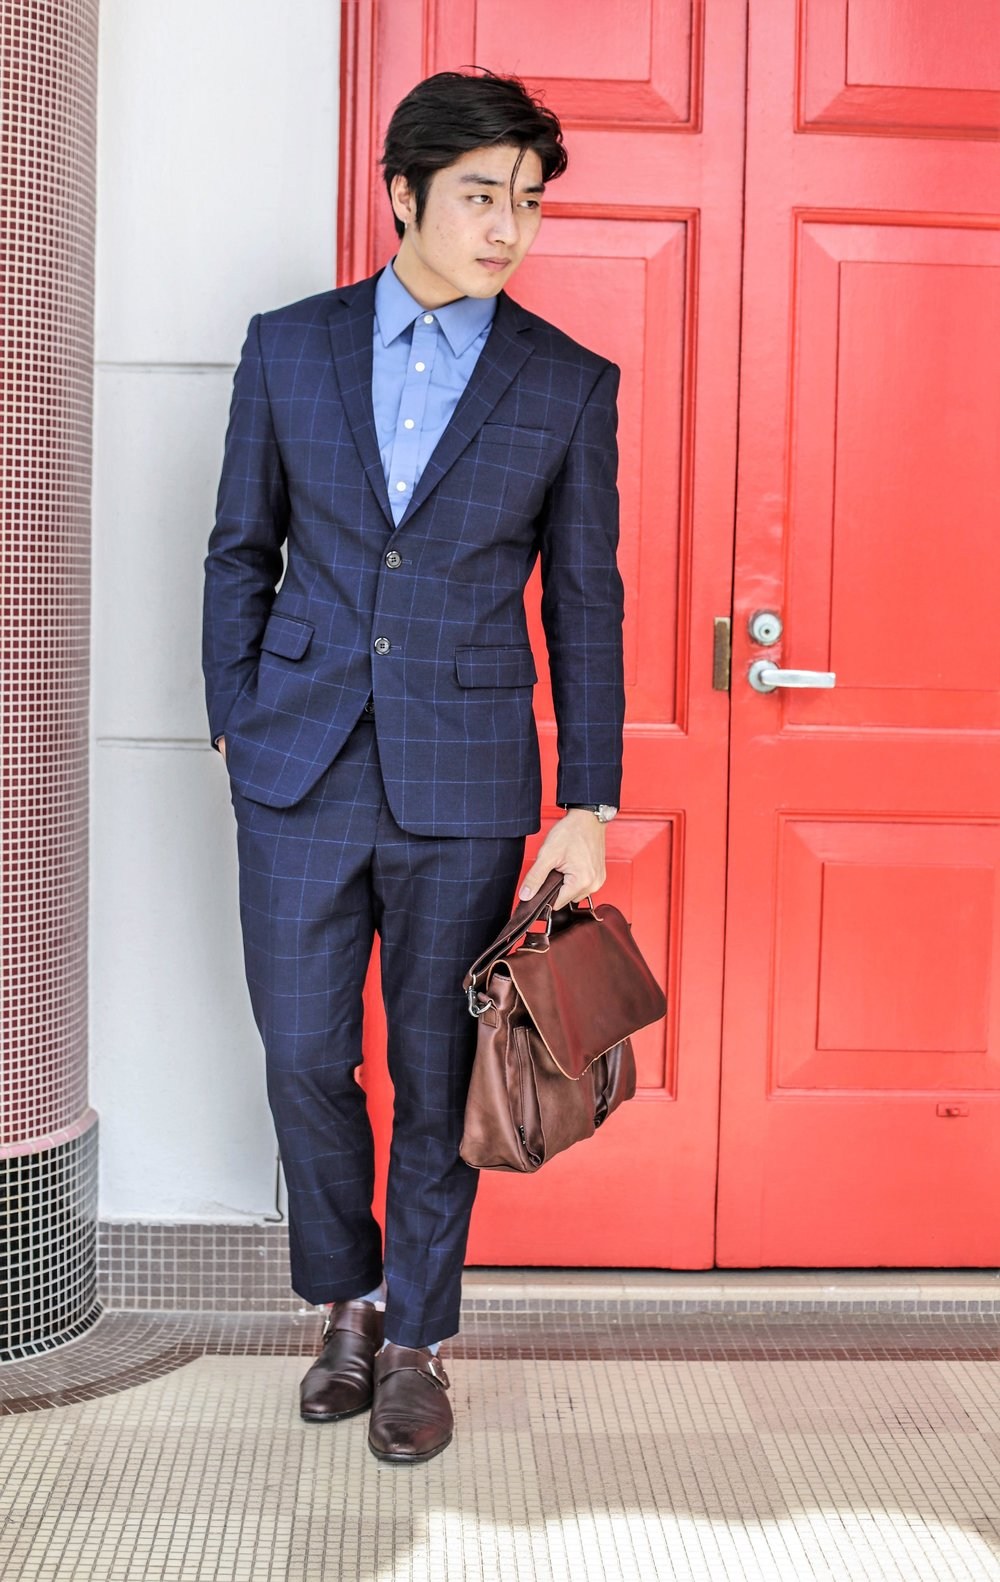 Jonan+Navy+Blue+Windowpane.jpg